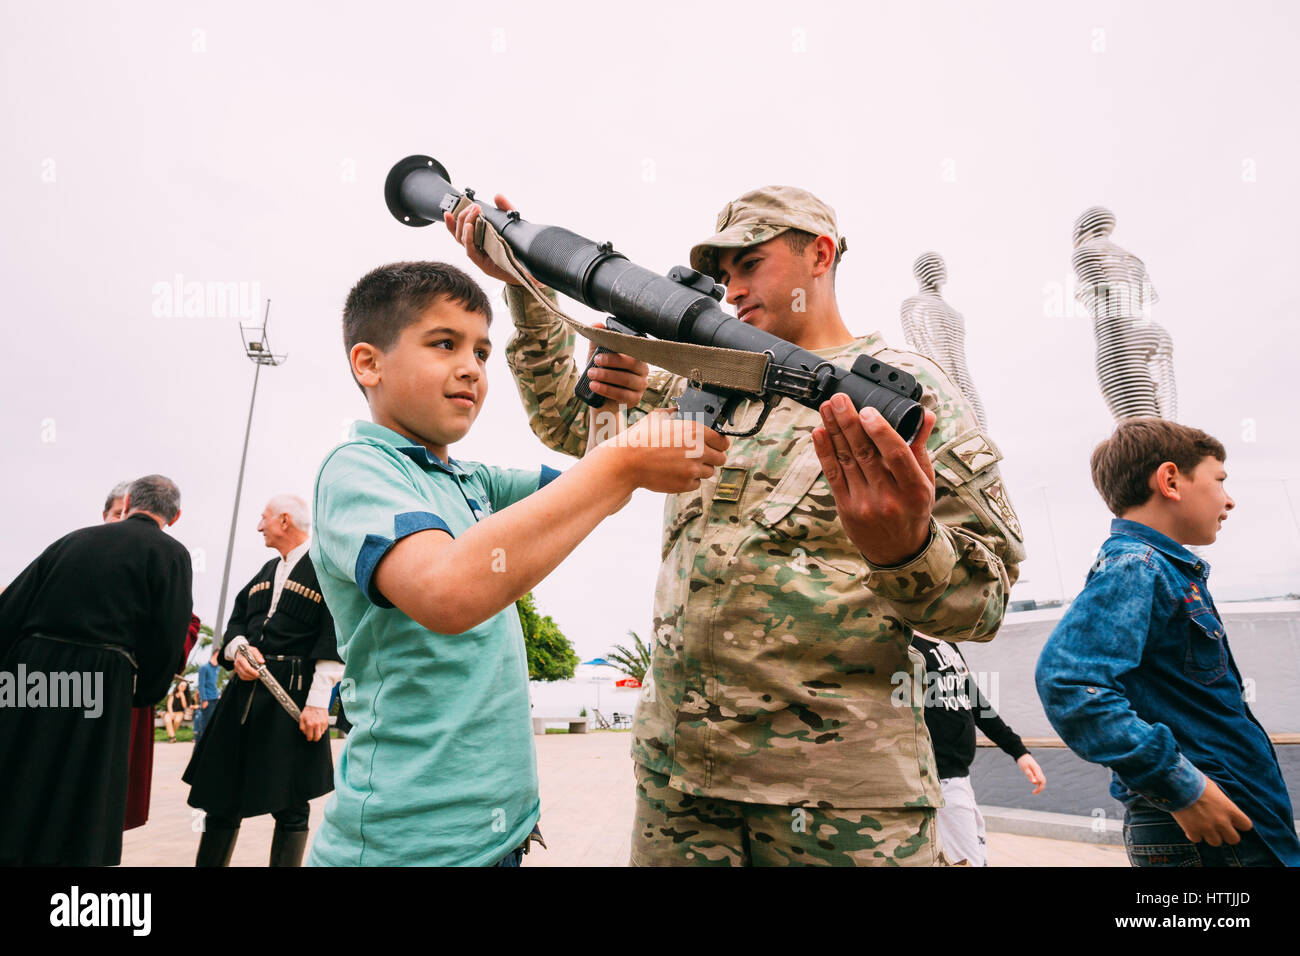 Batumi, Adjara, Georgia - May 26, 2016: Boy aiming rocket launcher at an exhibition of weapons during celebration - Stock Image